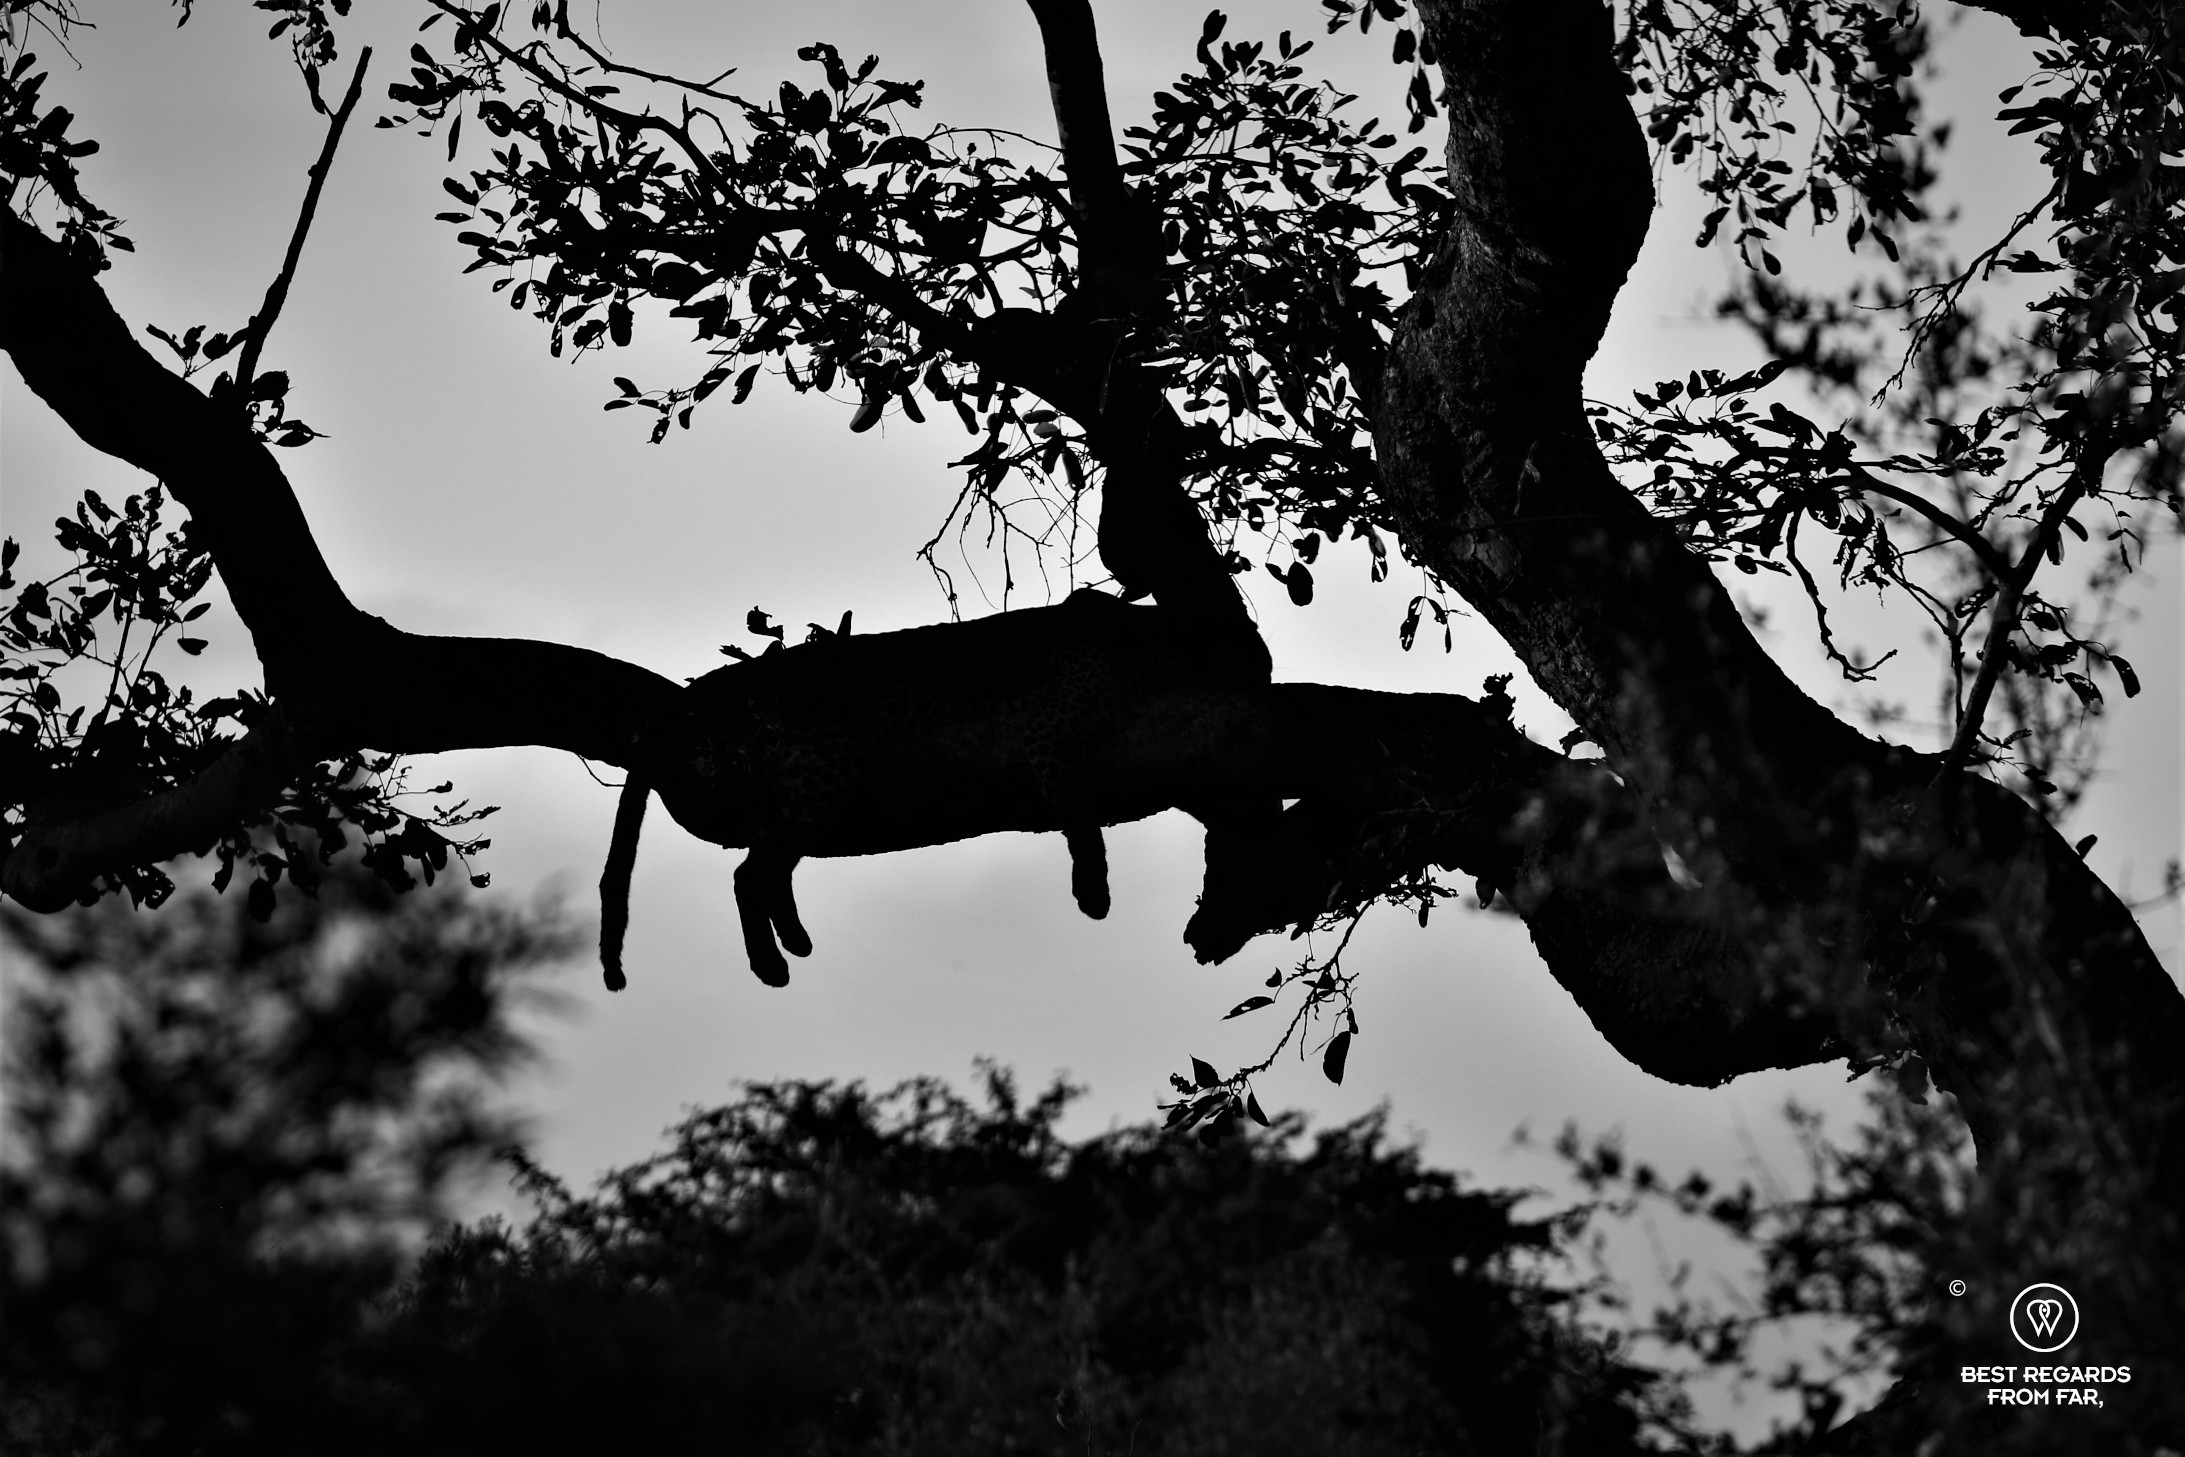 Black and white photos of the silhouette of a leopard sleeping in the tree with hanging paws and tail clearly visible